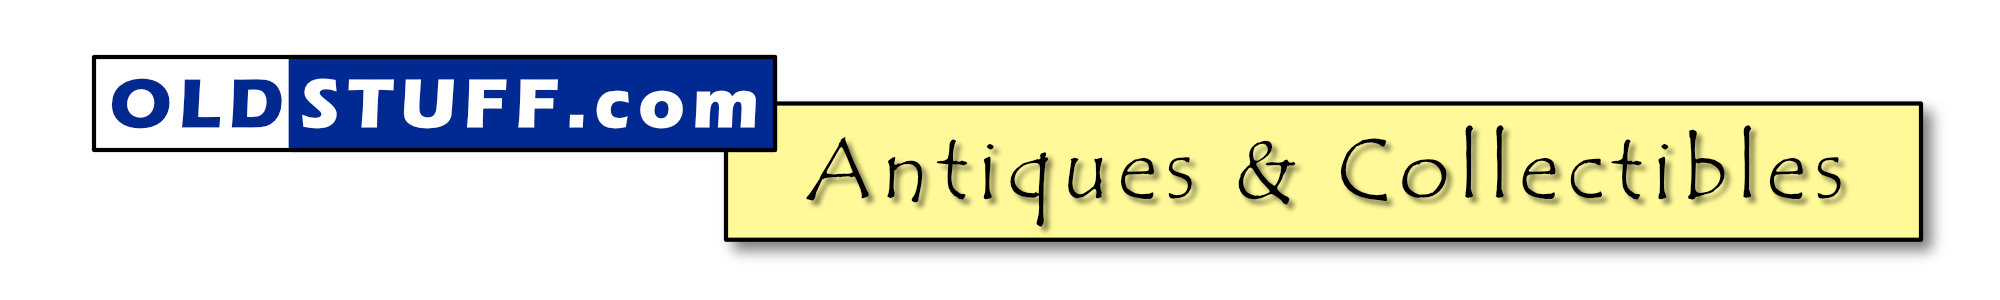 Oldstuff.com – Antiques, Collectibles & Old Stuff